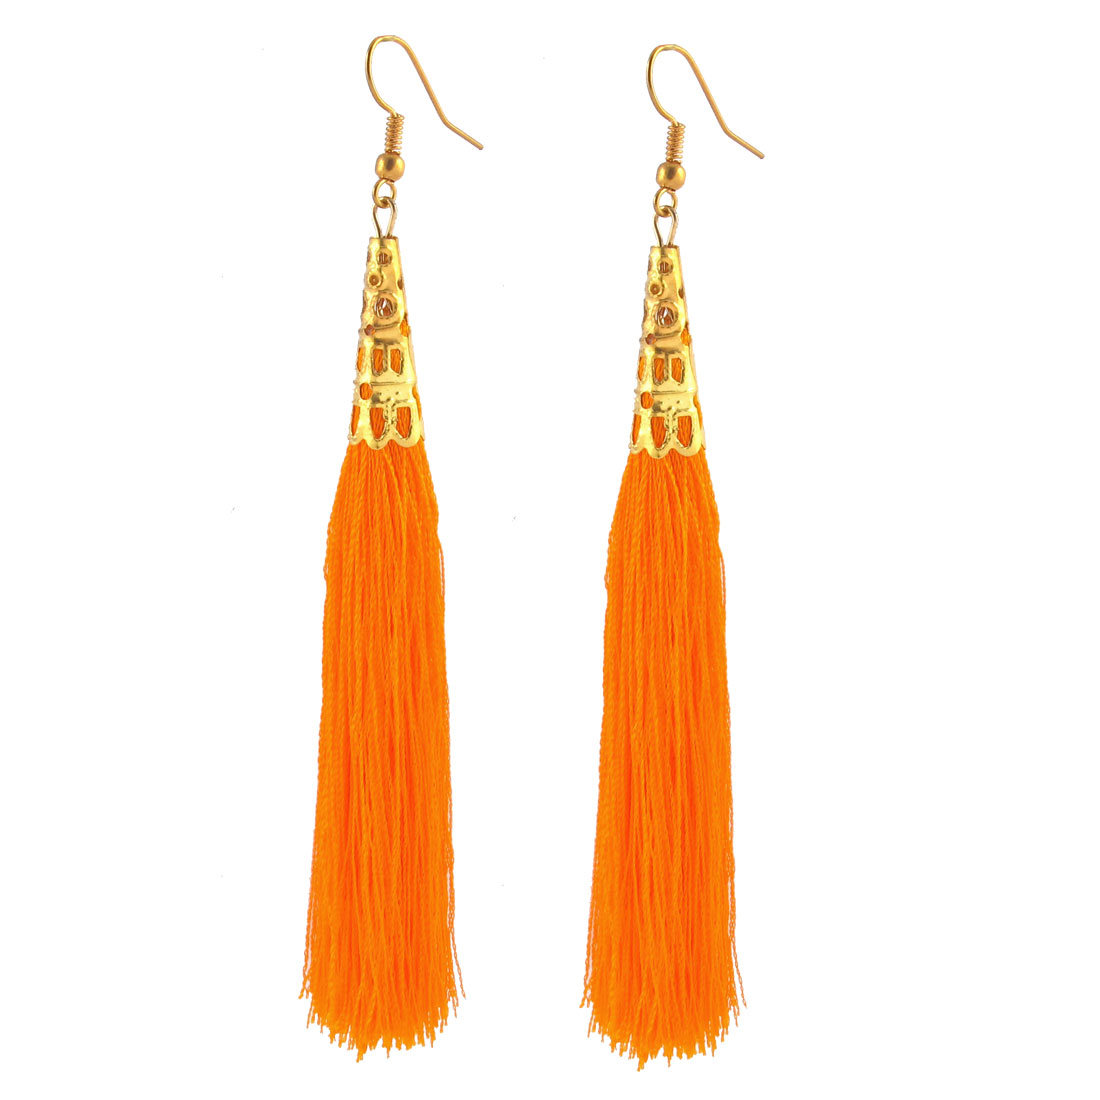 Woman Long Tassel Dangle Hook Earrings Charm Hanging Decoration Pair Orange